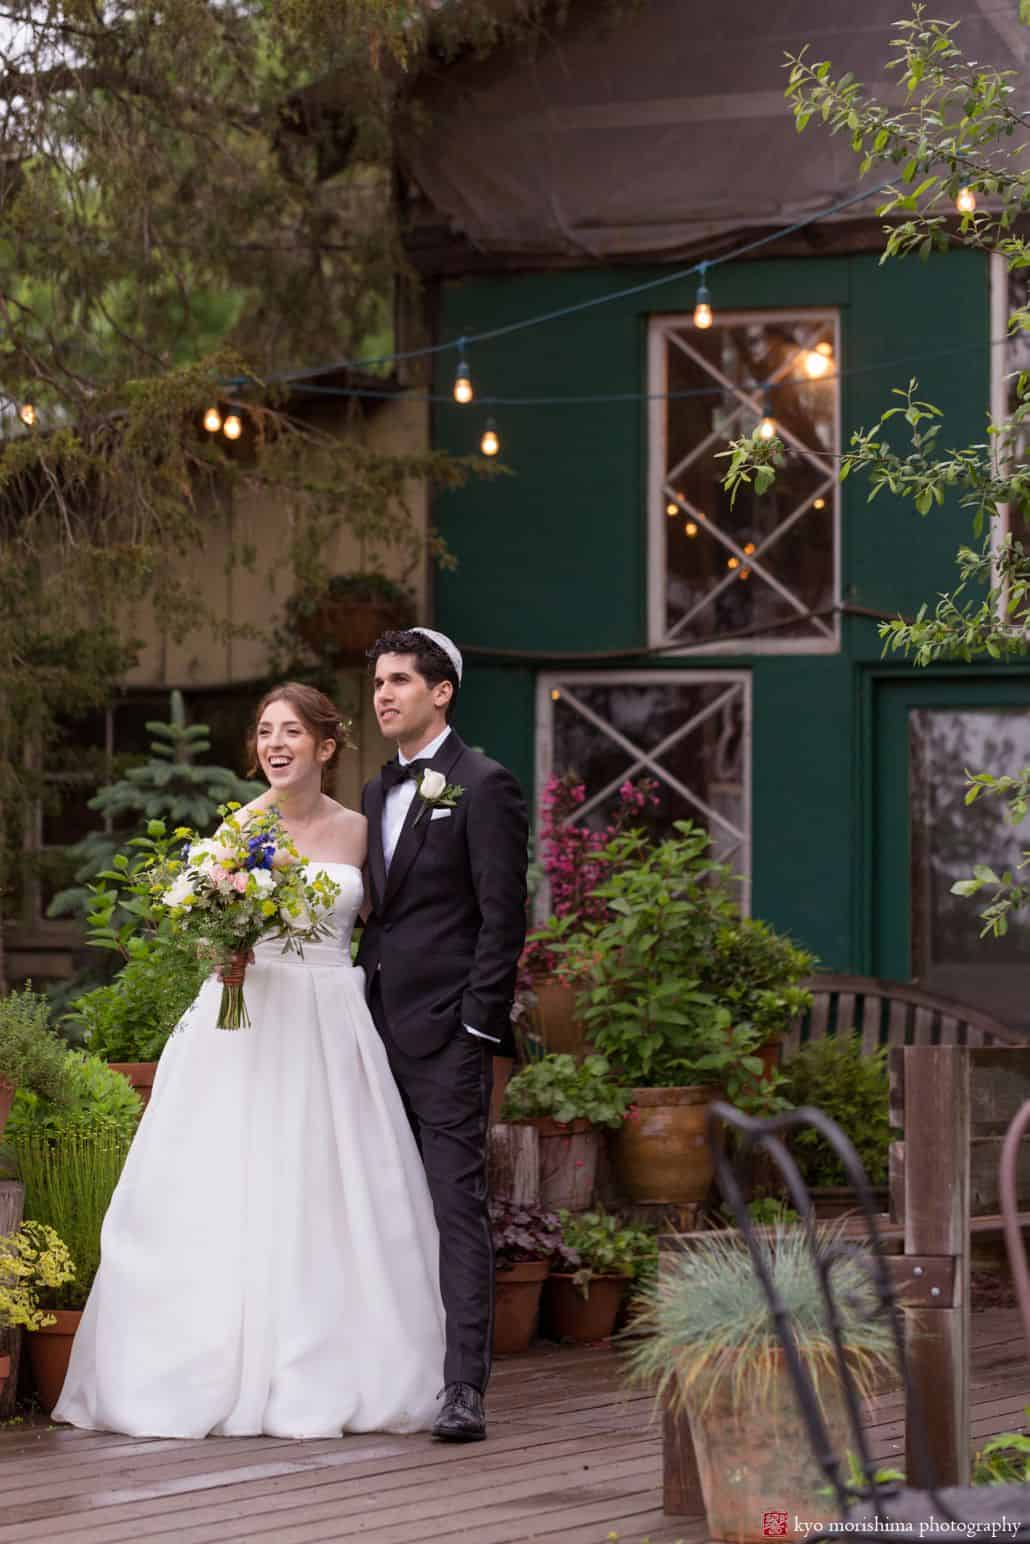 Bride and groom stand together and look on at Blooming Hill Farm wedding. Fleur di re bridal bouquet, Designer Loft wedding dress, green rustic cottage, greenery and potted plants on wooden deck, overhead string lights, NYC Jewish Summer wedding photographer. groom wears bow tie and kippah